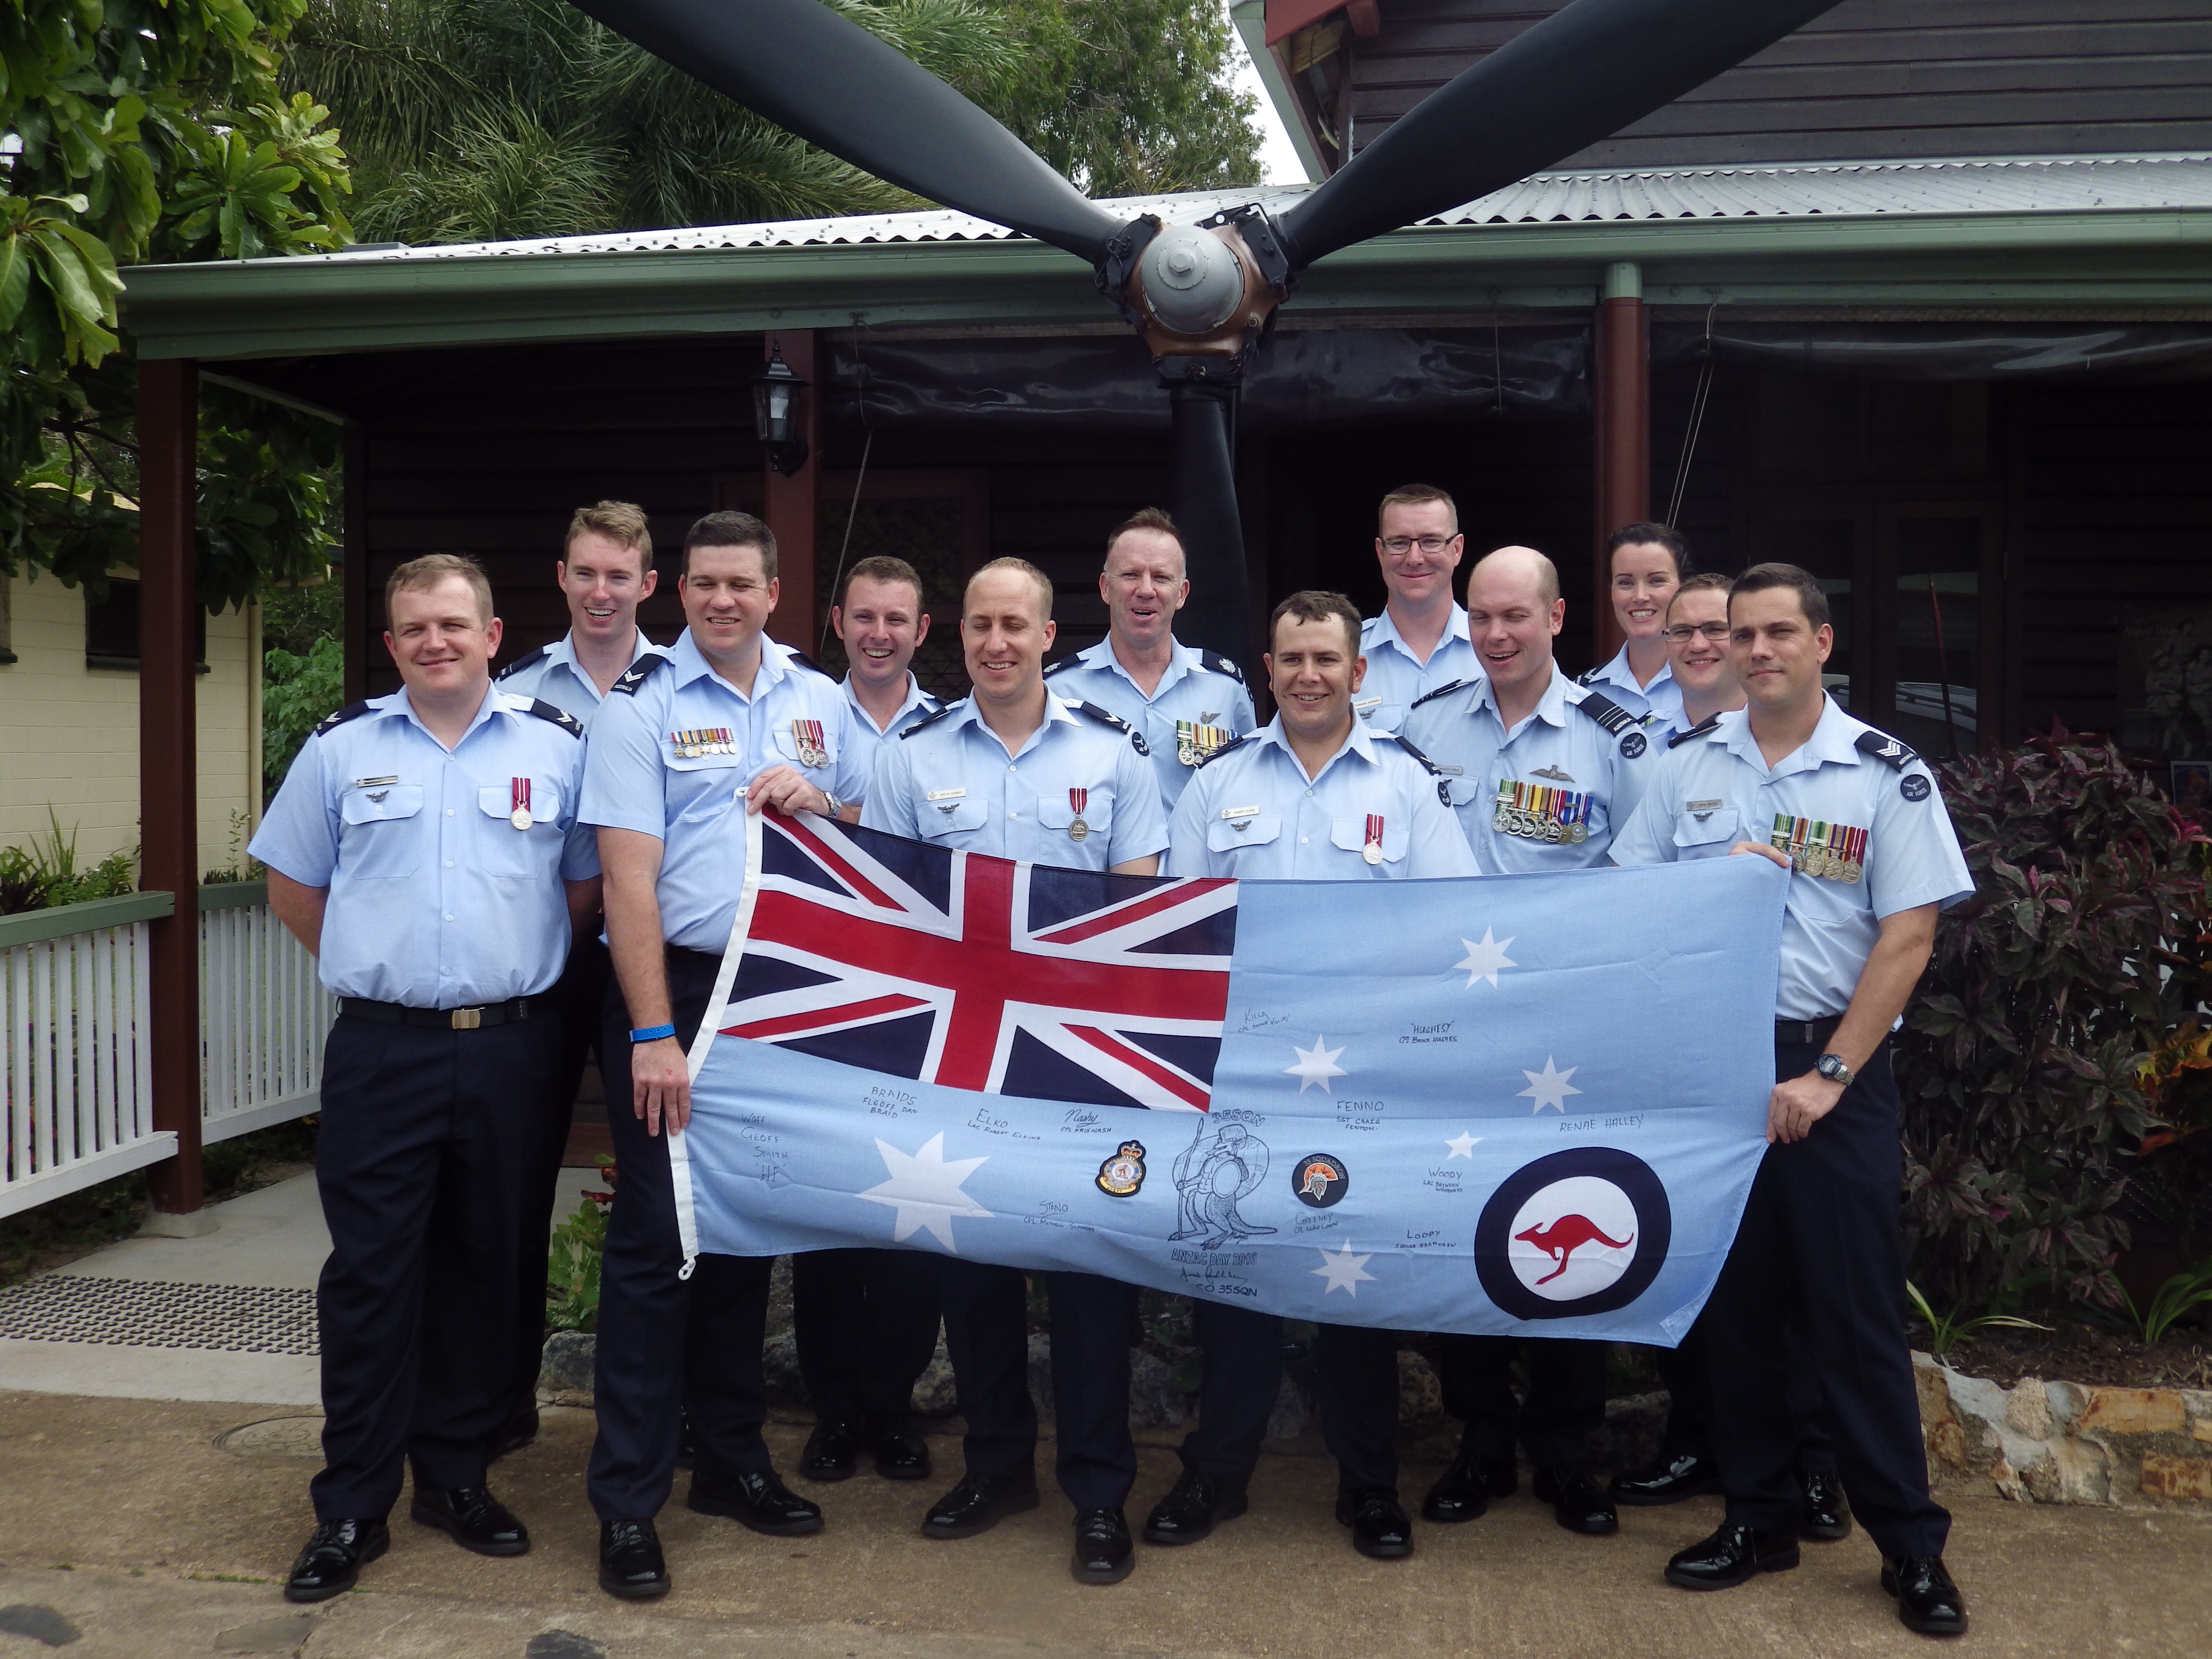 38 Sqn with newly signed flag